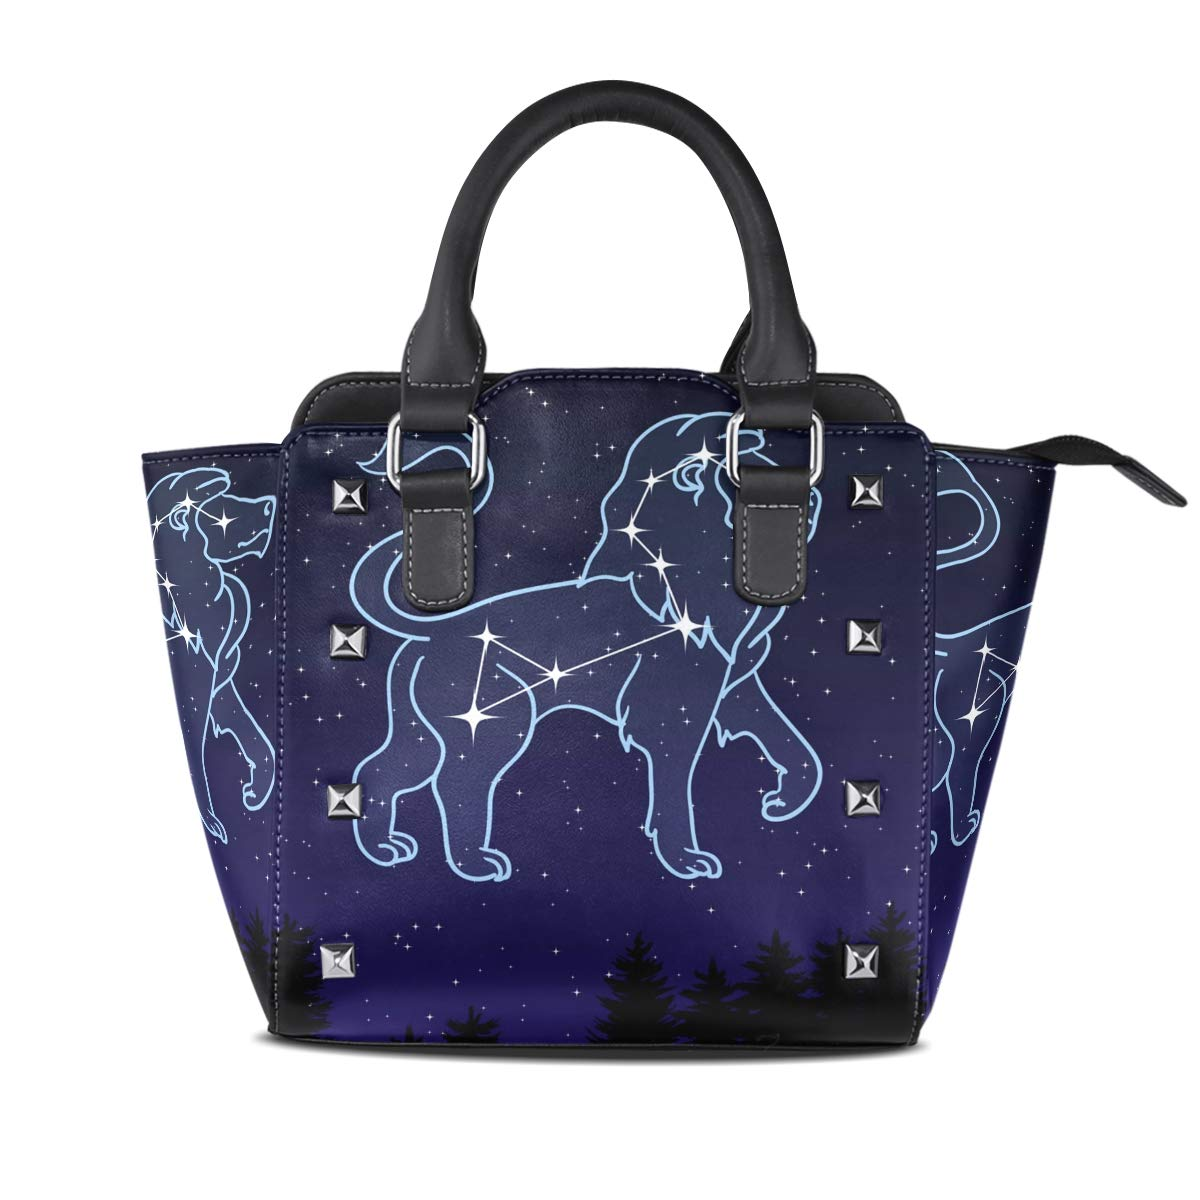 Design4 Handbag Horse Galloping Genuine Leather Tote Rivet Bag Shoulder Strap Top Handle Women